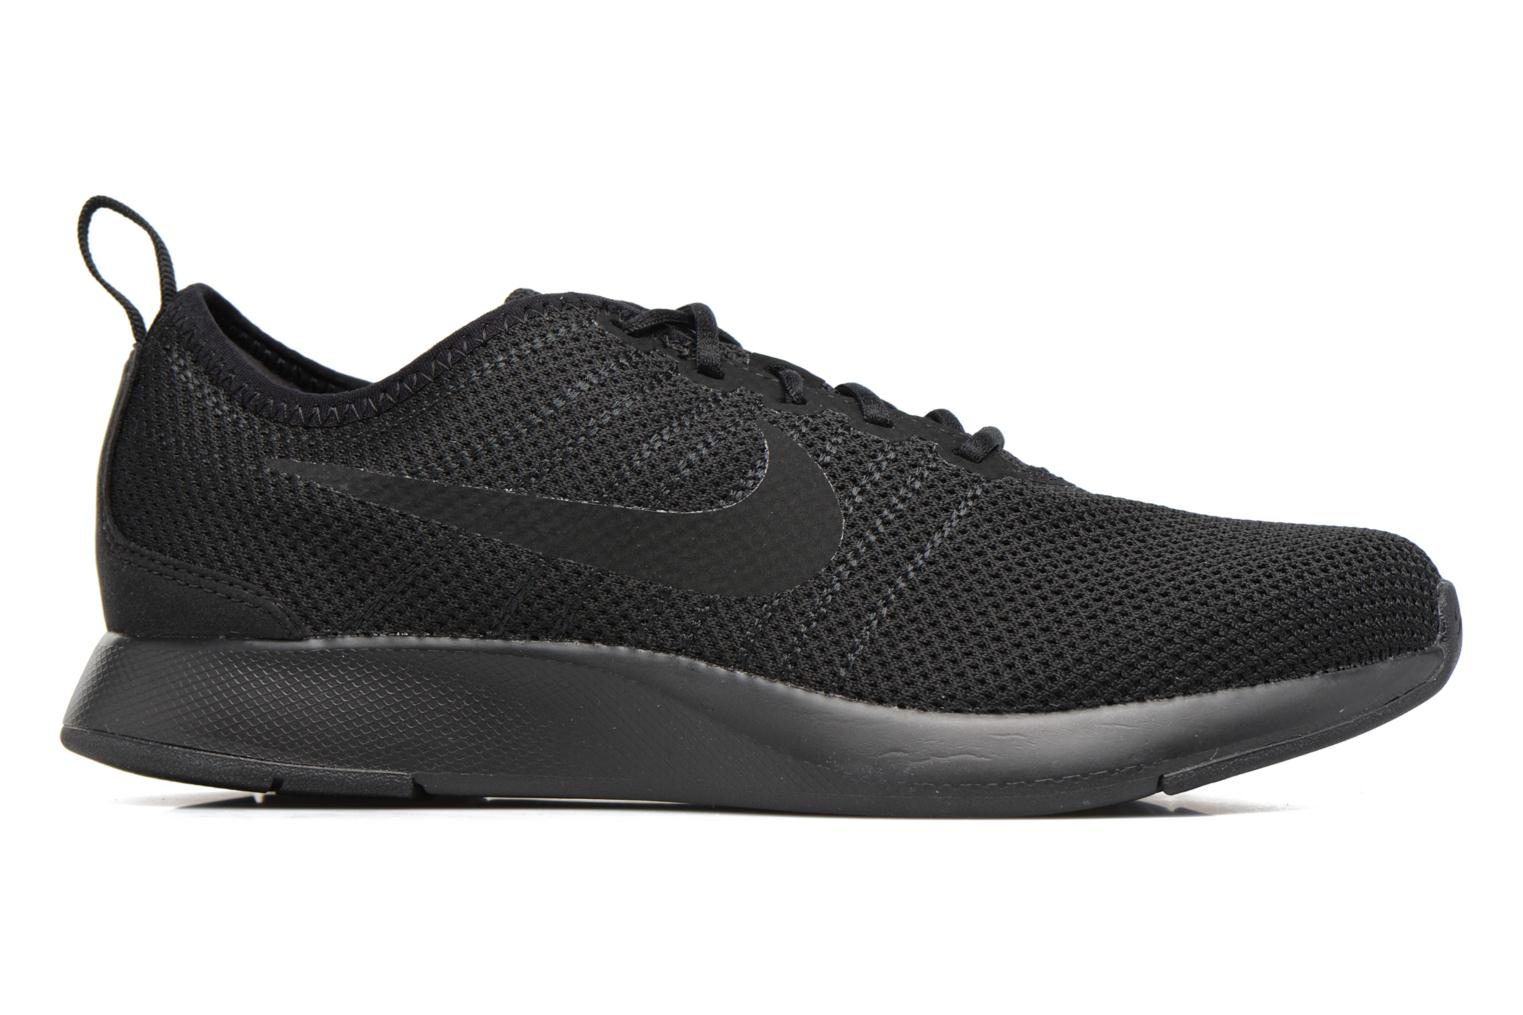 BLACK/WHITE-DARK GREY Nike Nike Dualtone Racer (Gs) (Noir)